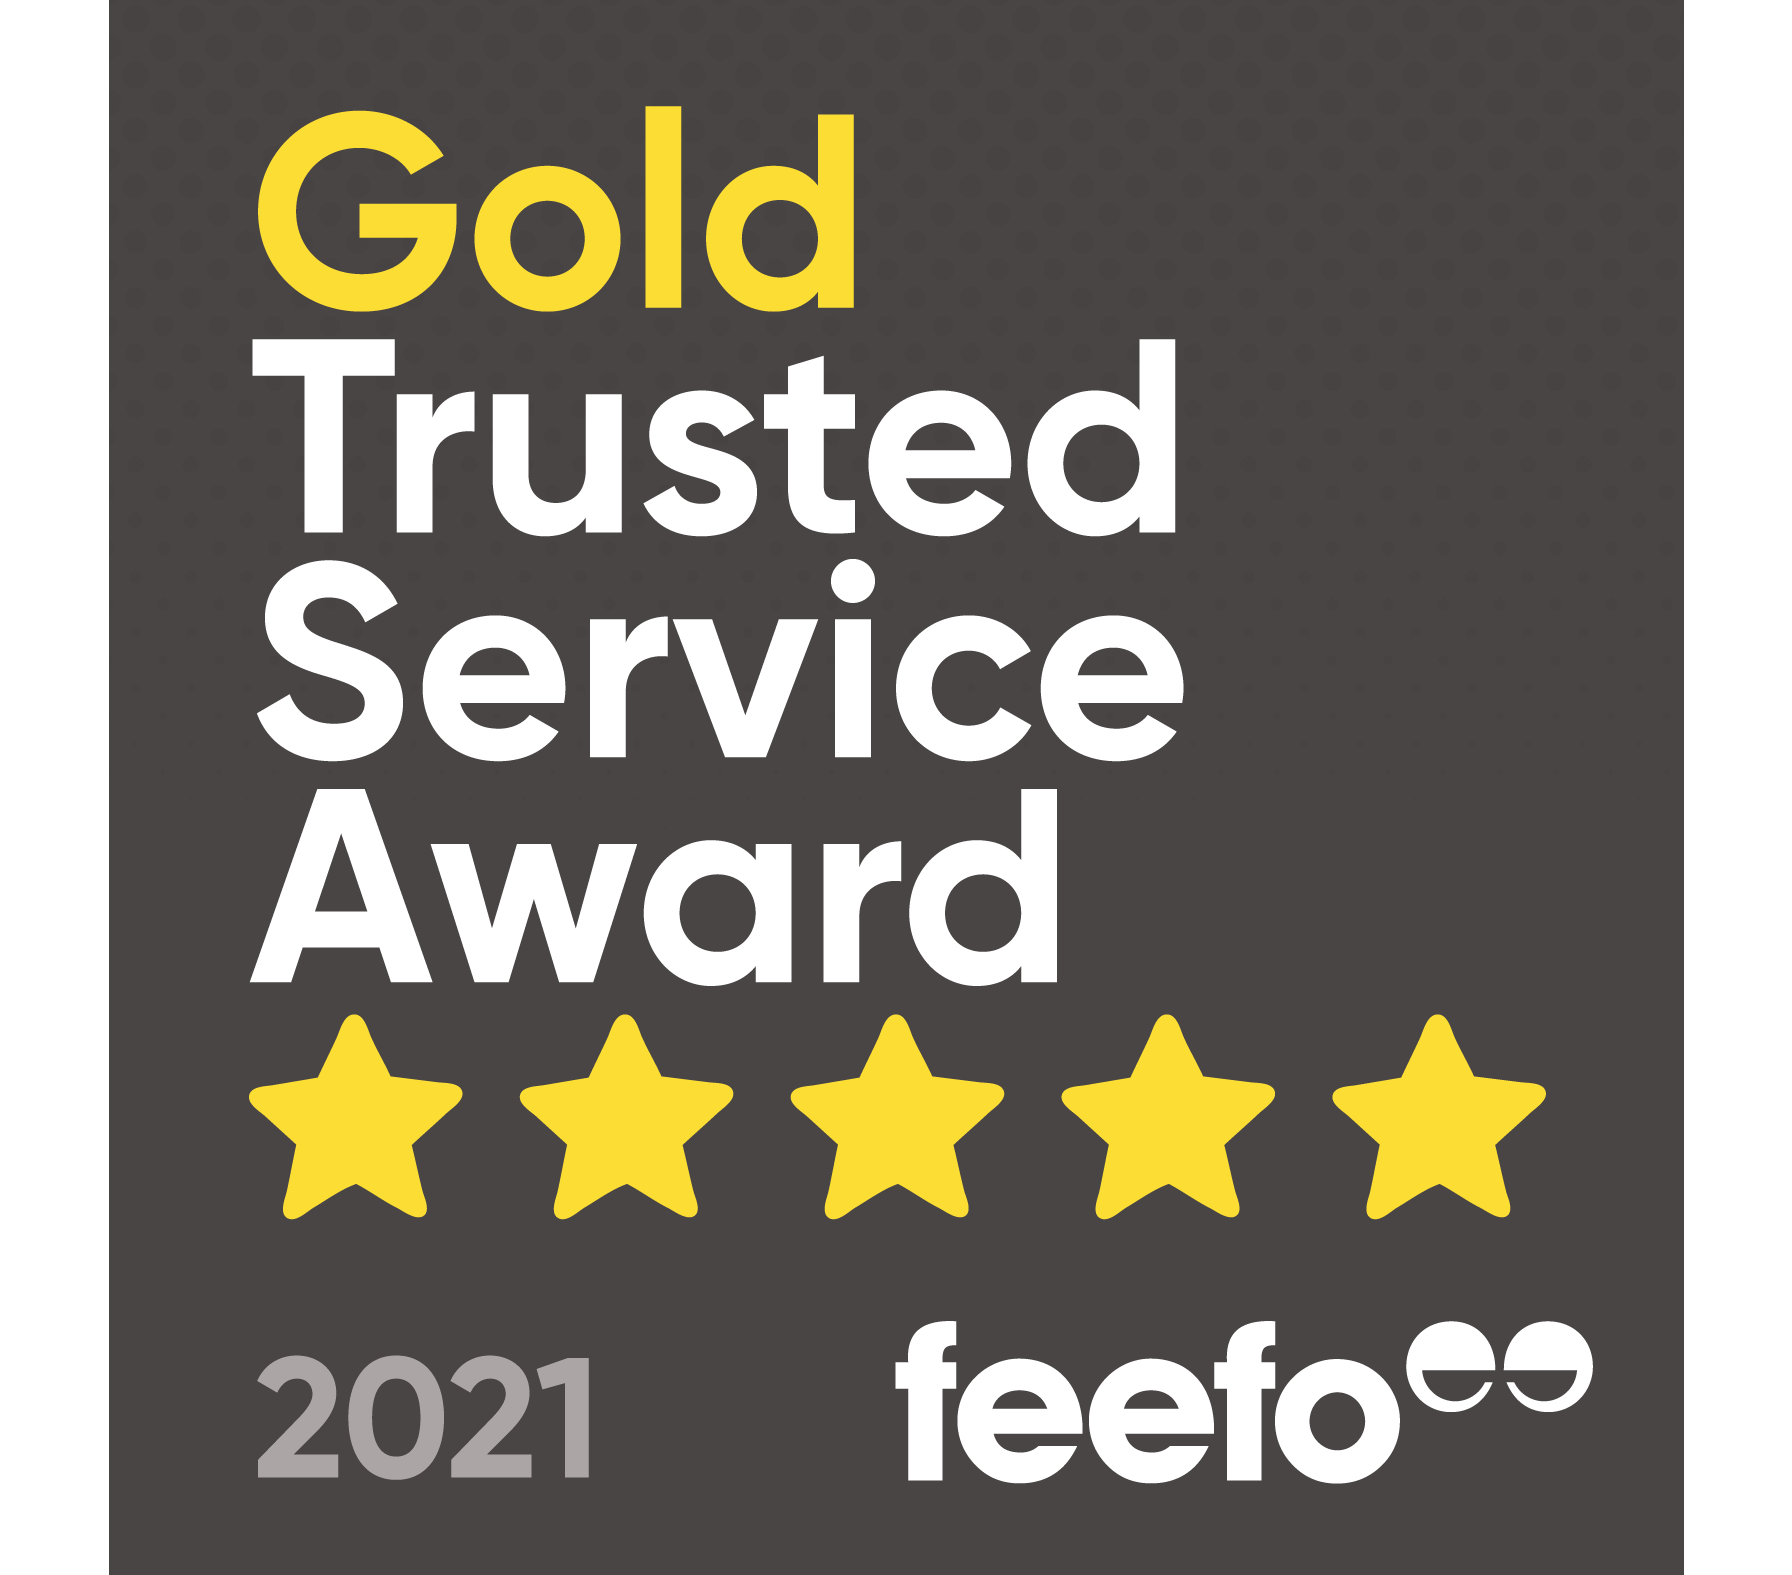 Winners of the Feefo Gold Trusted Service Award 2021